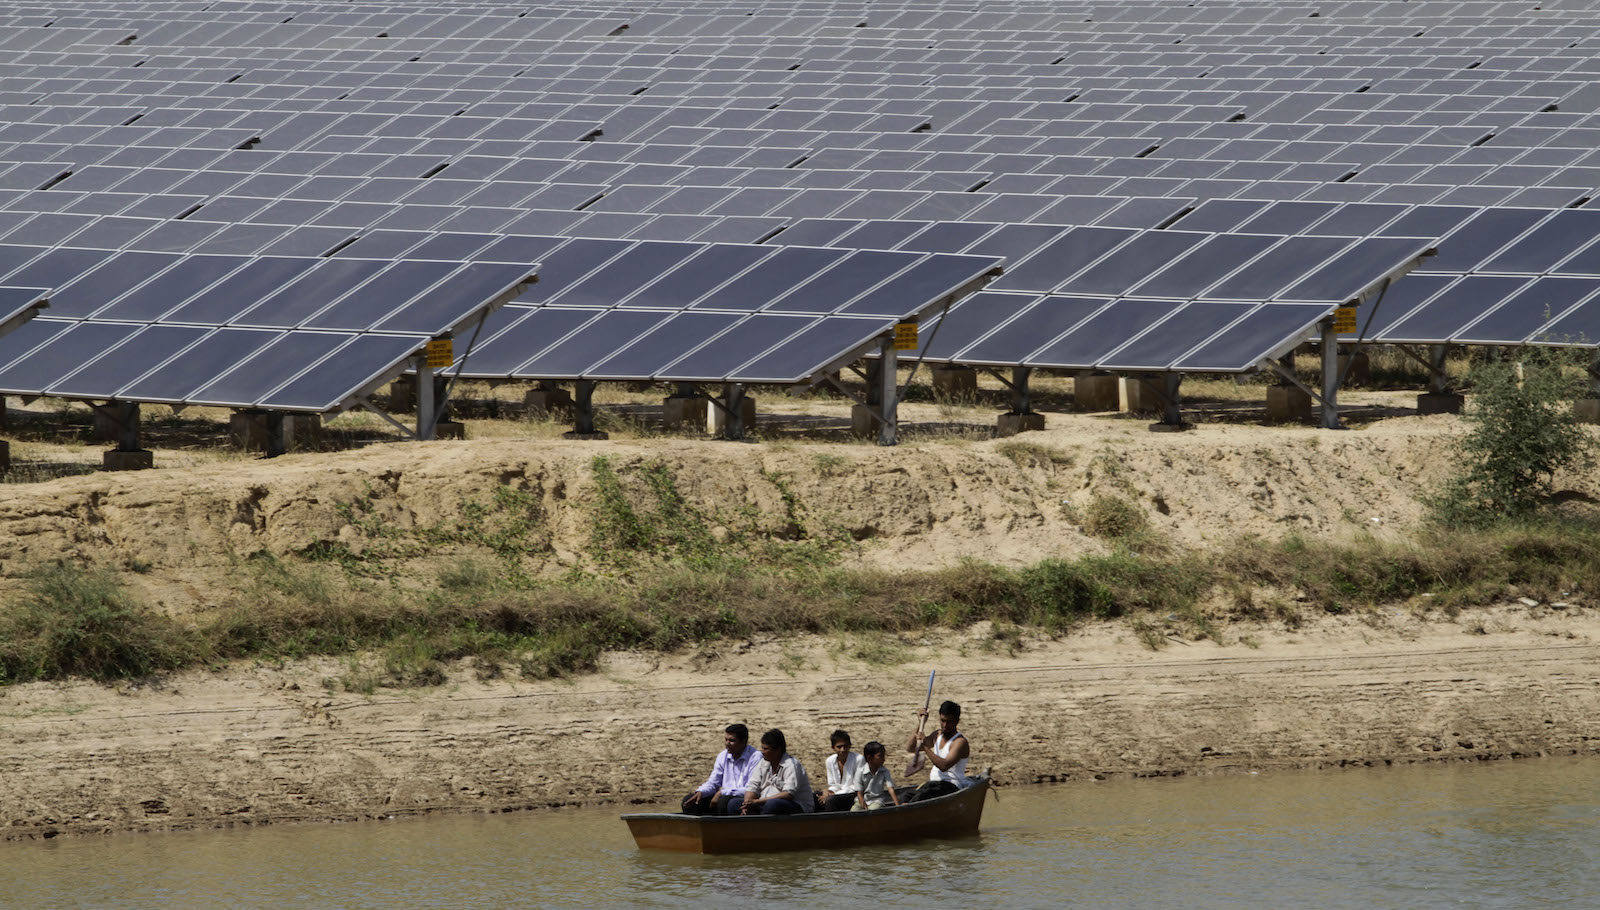 Locals on a boat pass by panels at a newly inaugurated solar energy farm at Gunthawada in Gujarat state, about 175 kilometers (109 miles) north of Ahmadabad, India, Friday, Oct. 14, 2011. The 30 mega-watt solar farm built by Moser has been set up with an investment of Rupees 4.65 billion (US $96,875,000) and uses 236,000 thin film modules, according to an official release.